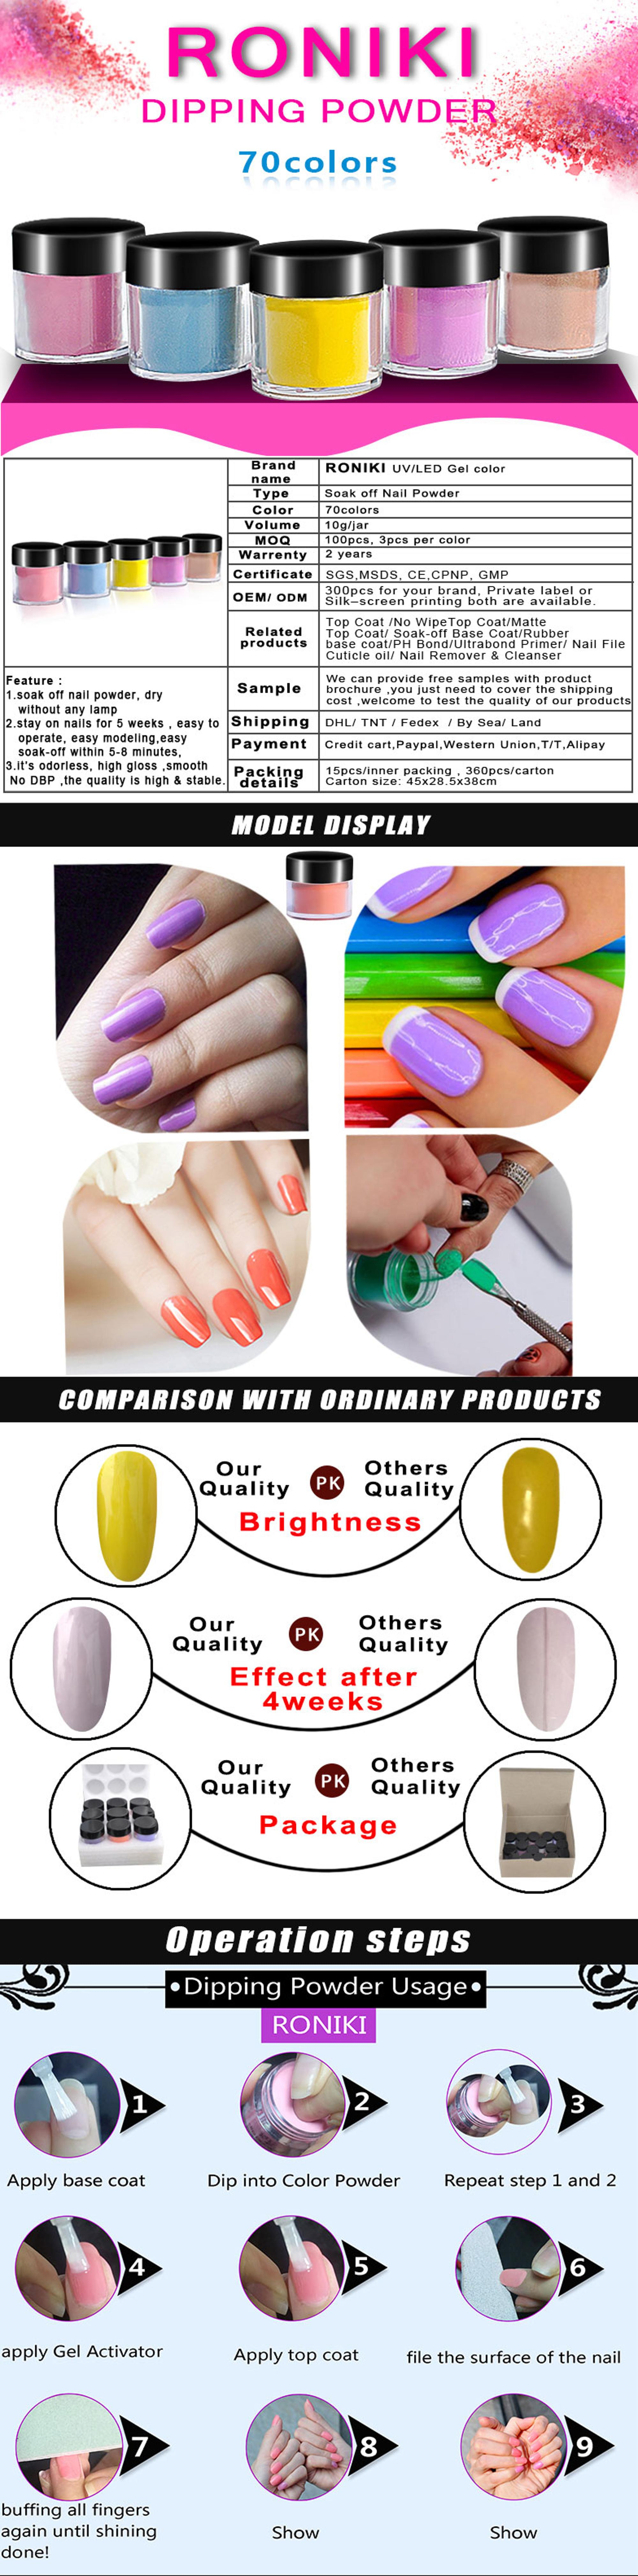 Rnk Best Selling Different Colors Nail Supplies Wholesale Acrylic Nail Dipping Powder Buy Nail Gel Polish Dipping Powder Nail System Wholesale